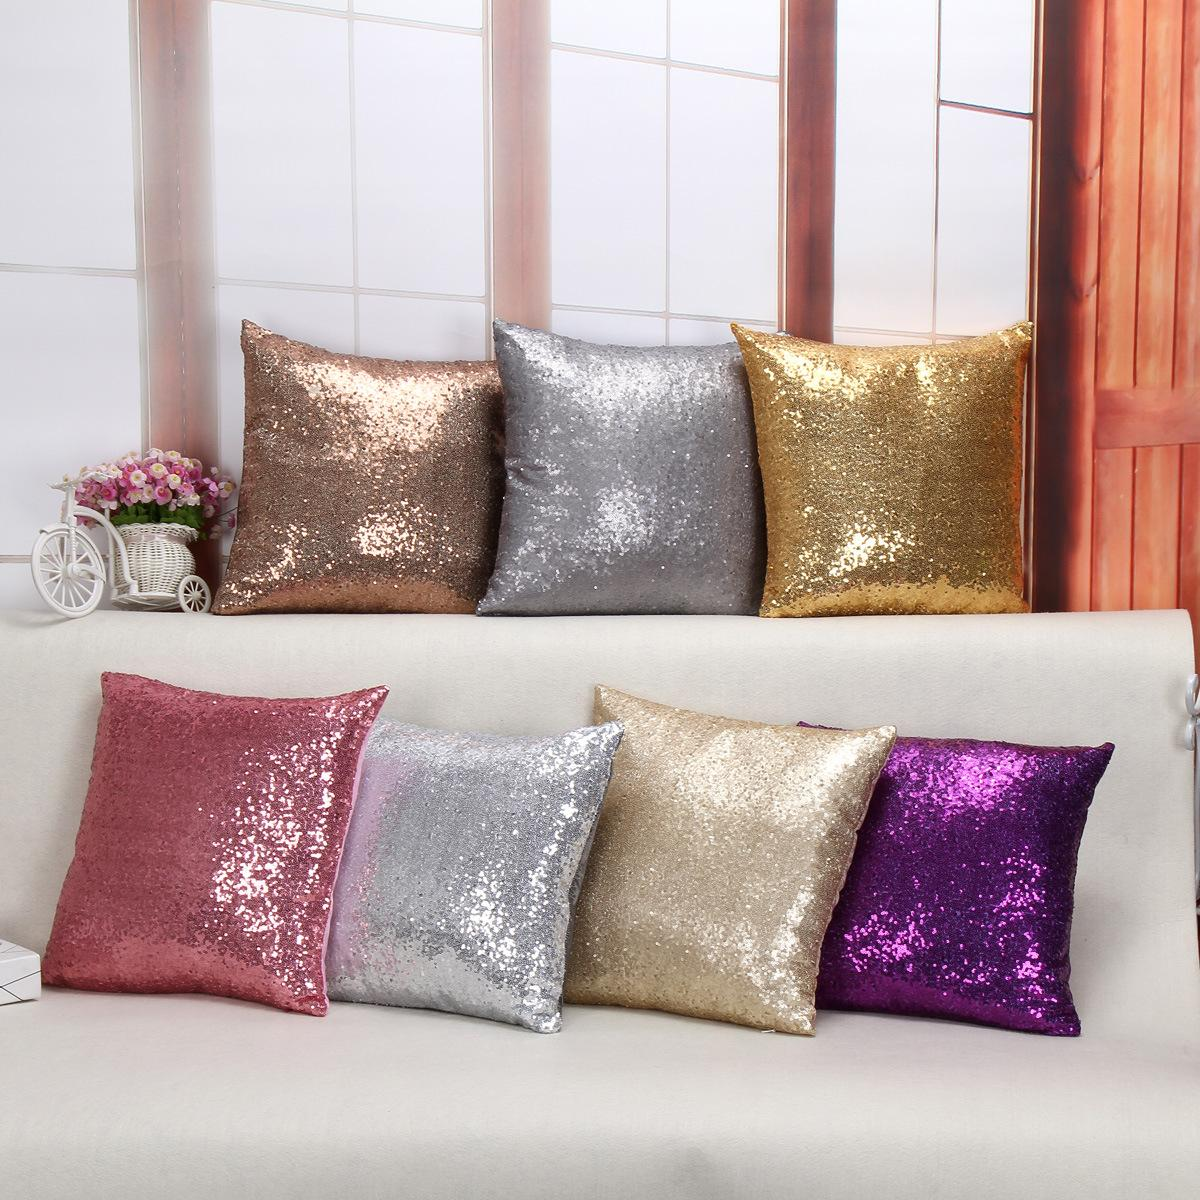 christmas home decor fashion luxury 4040cm sequin cushion cover multicolors sparkling square pillow cover home textile sofa decor - Home Decor Cushions